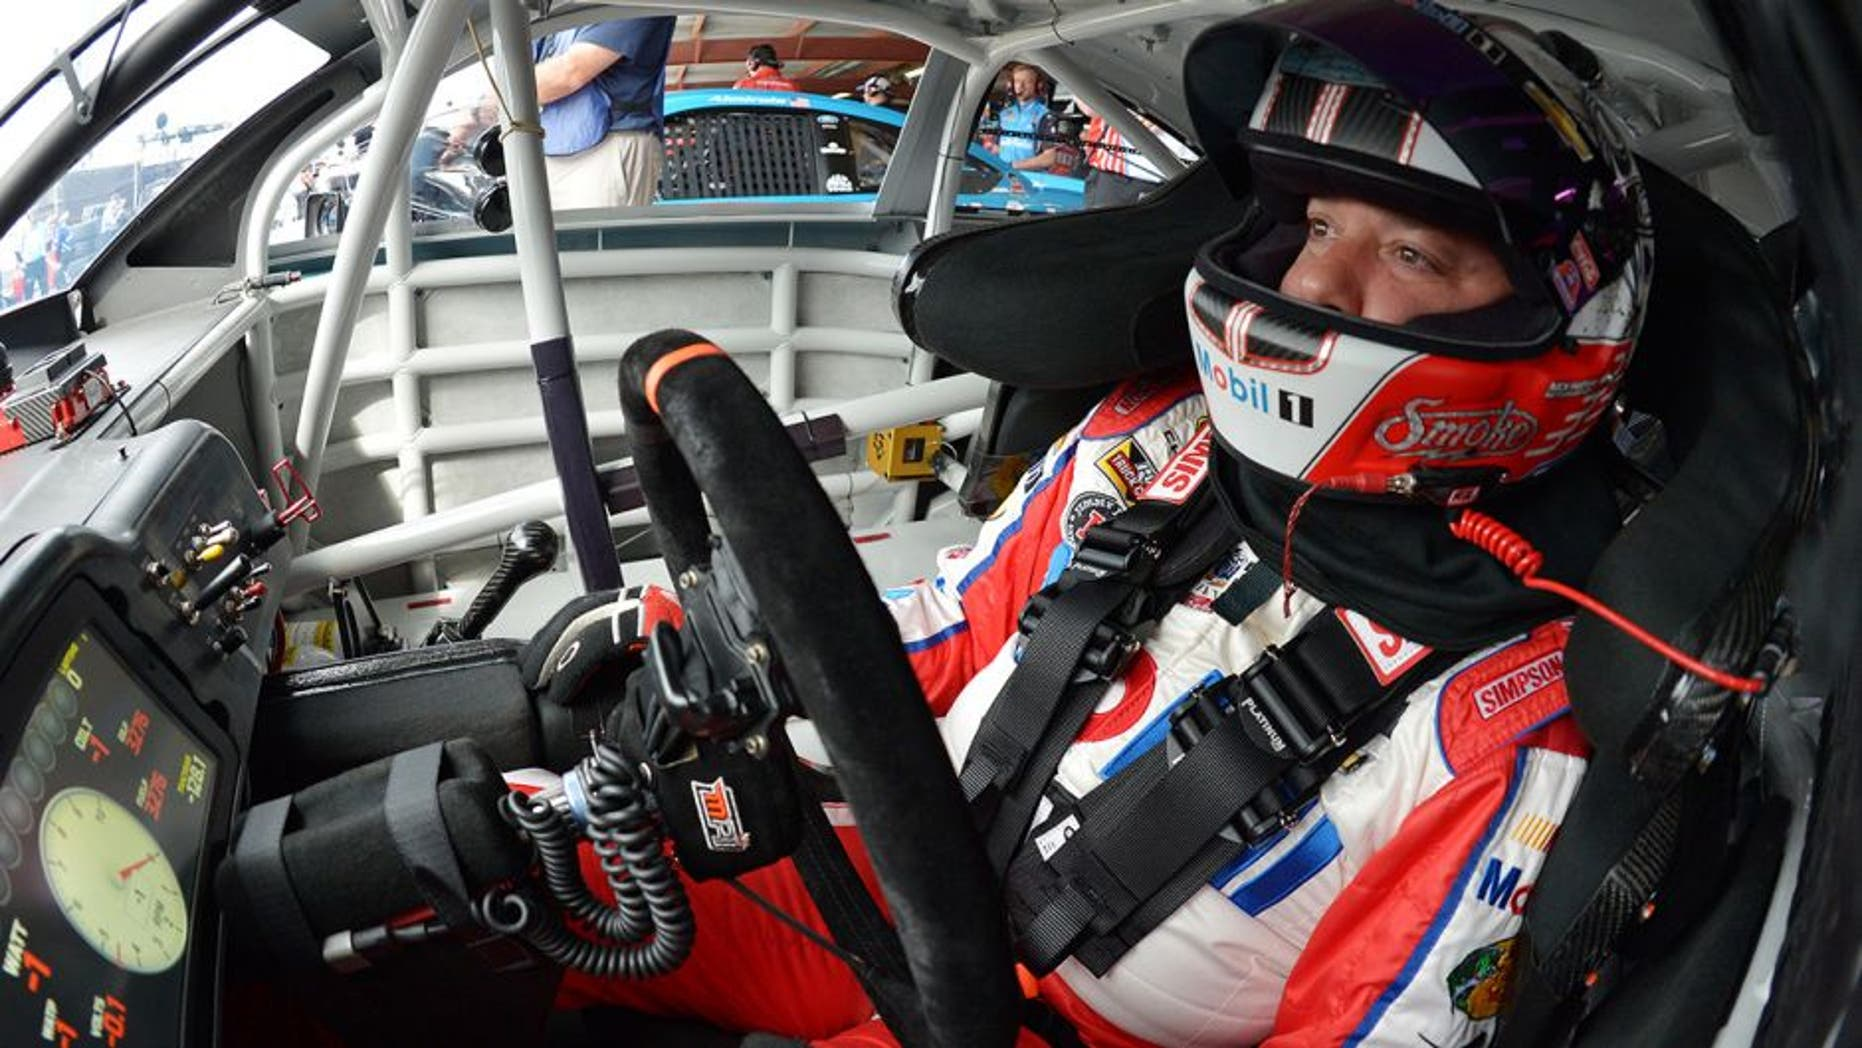 RICHMOND, VA - APRIL 23: Tony Stewart, driver of the #14 Mobil 1 Advanced Fuel Economy Chevrolet, prepares to drive during practice for the NASCAR Sprint Cup Series TOYOTA OWNERS 400 at Richmond International Raceway on April 23, 2016 in Richmond, Virginia. (Photo by Drew Hallowell/NASCAR via Getty Images)